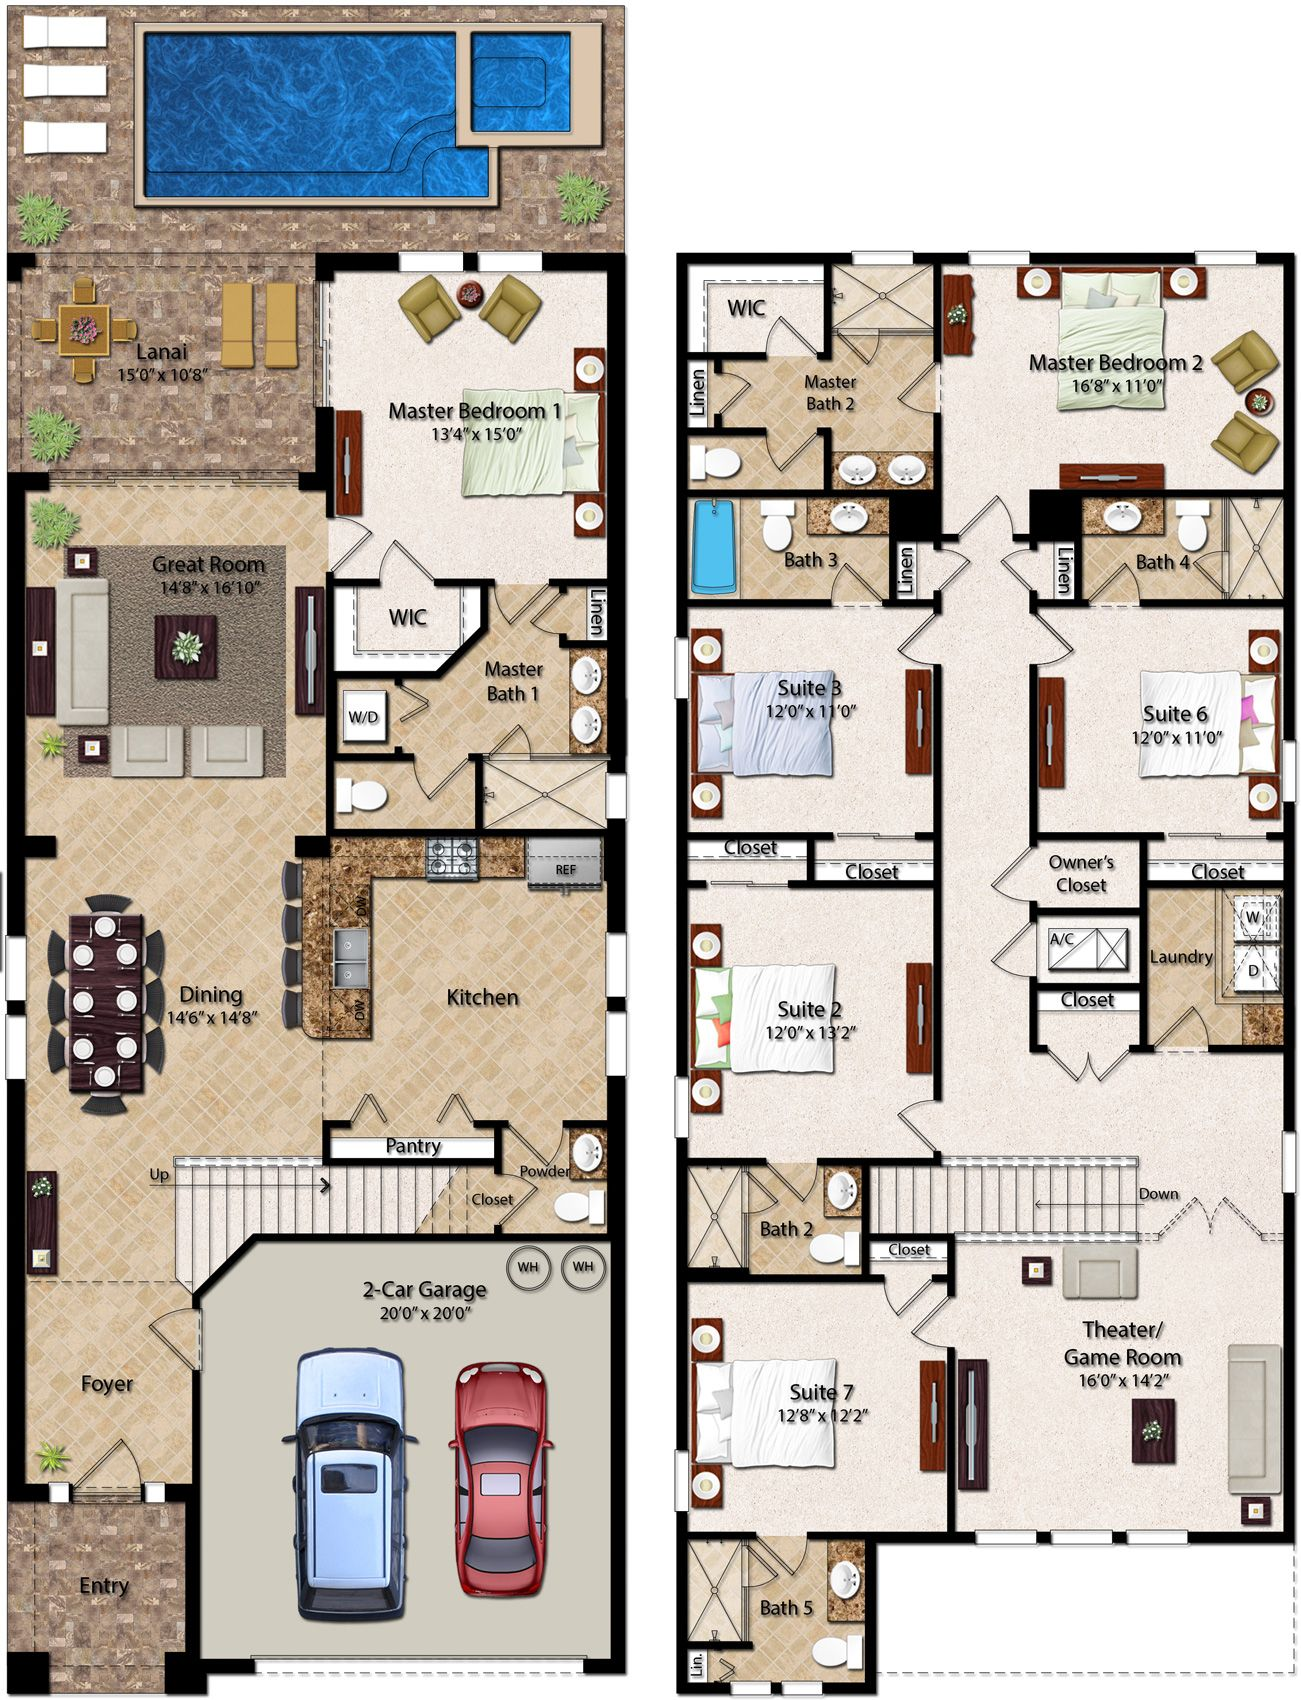 6 Bedroom Homes Ranging From 2 828 To 3 232 Square Feet The Two Story 6 Bedroom Residences Feature A House Plans Mansion House Layout Plans Pool House Plans